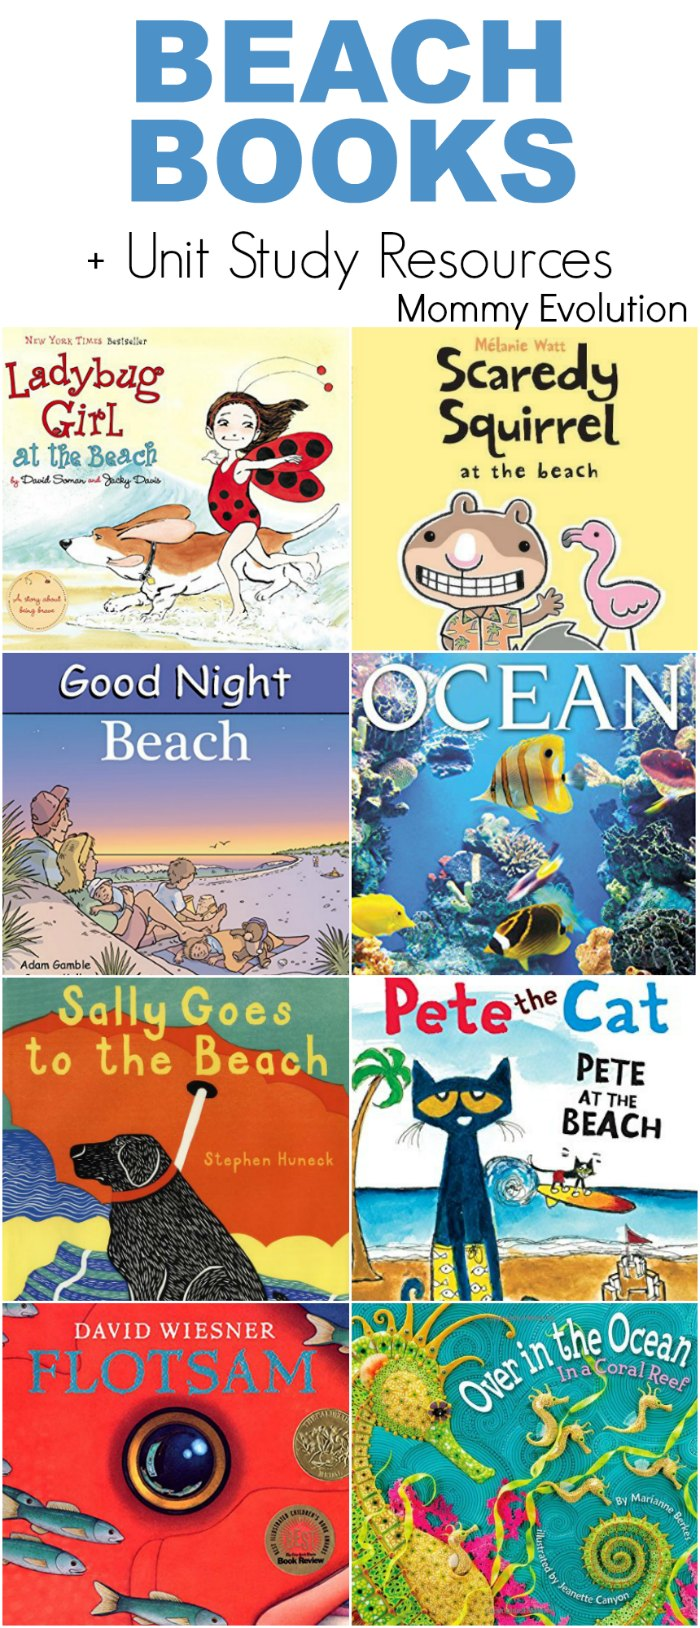 Books about Beaches for Kids + Unit Study Resources | Mommy Evolution